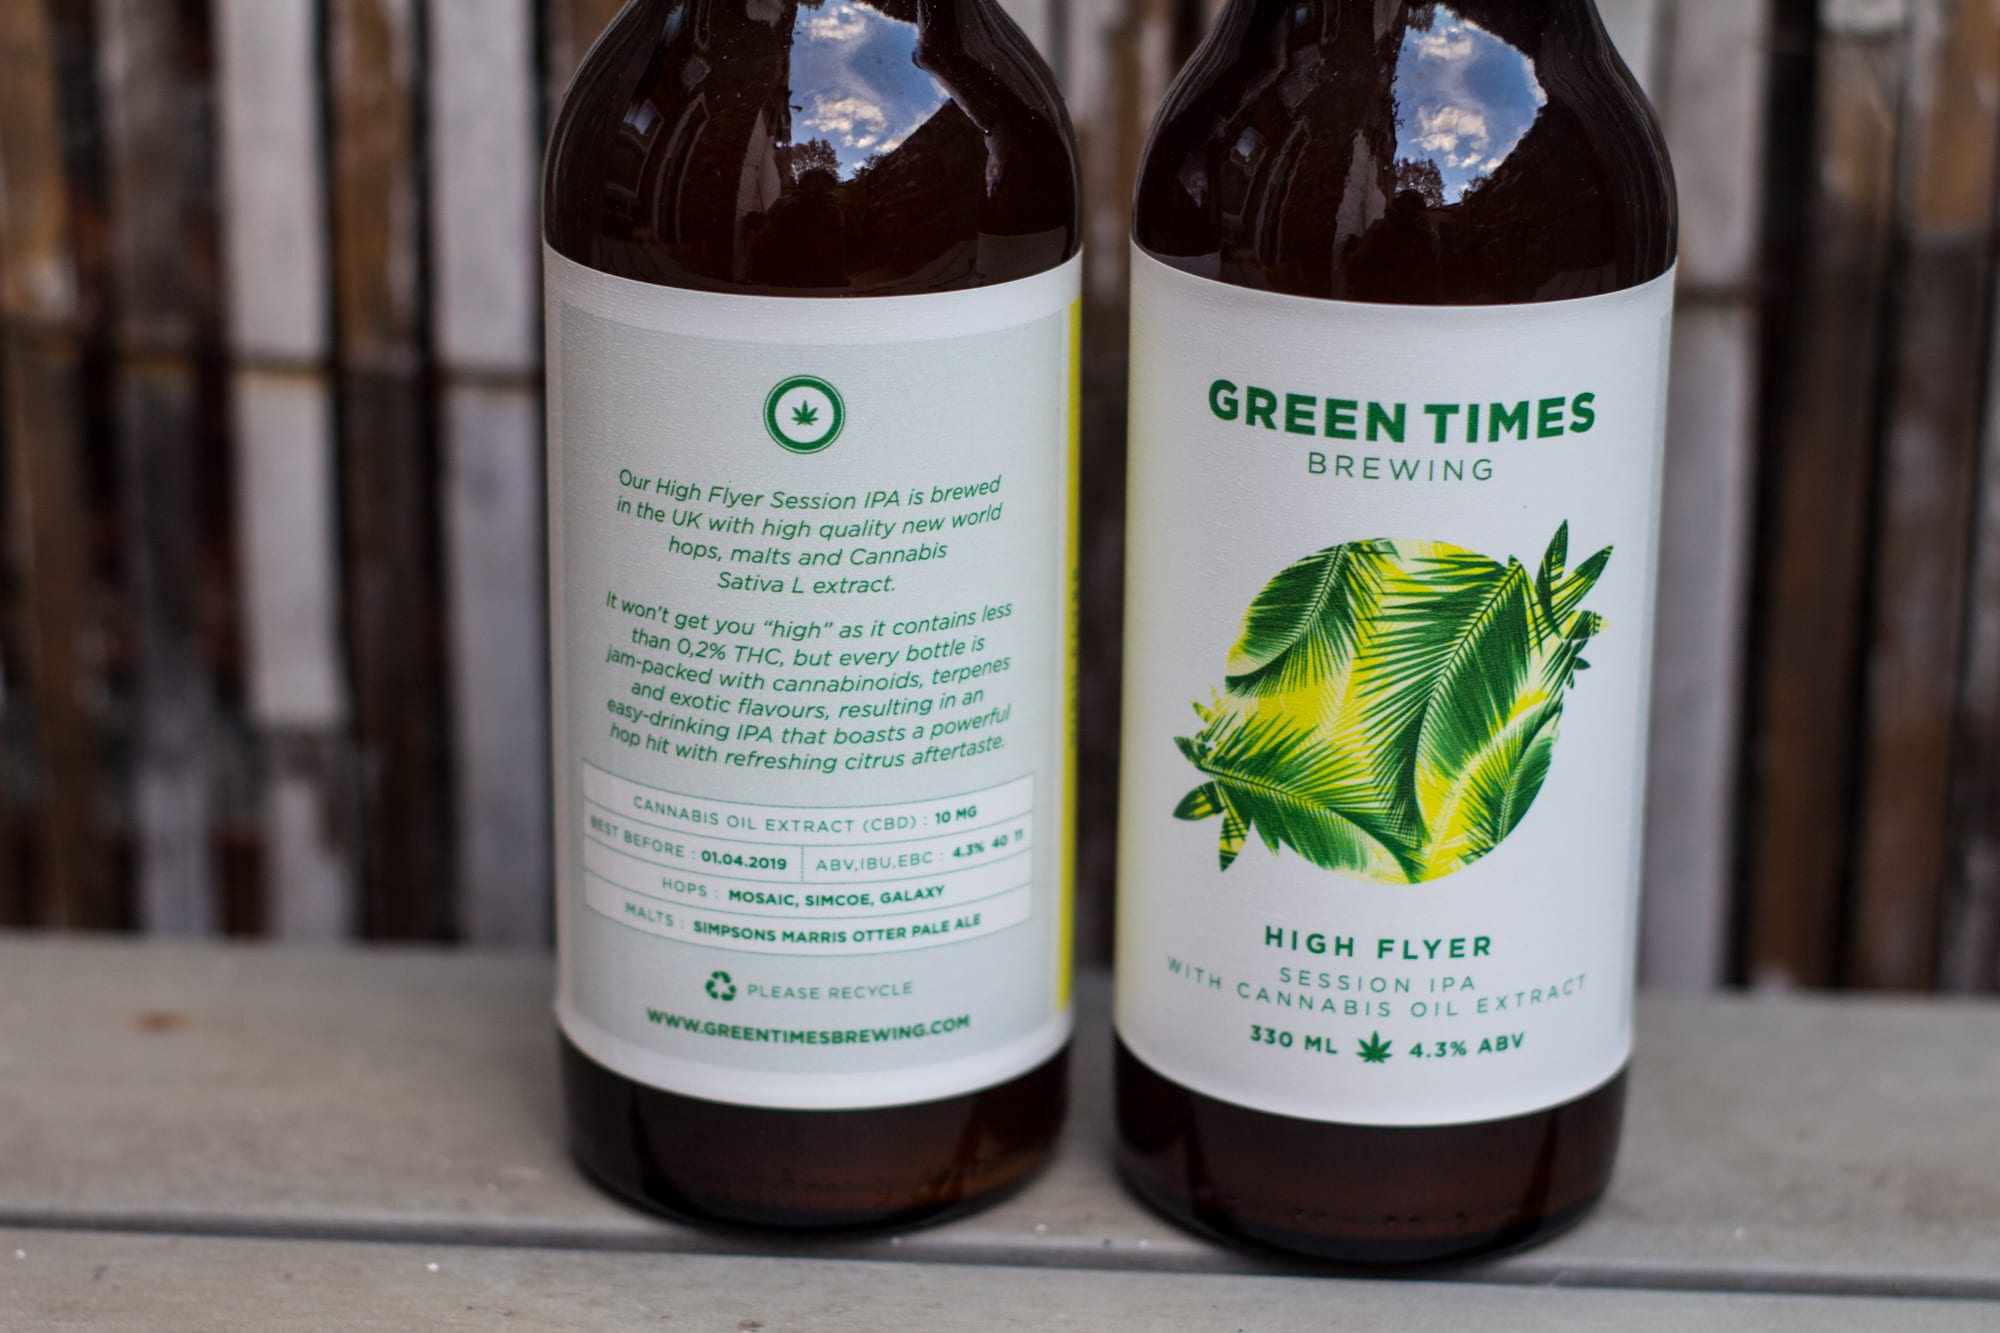 A close up of the Green Times